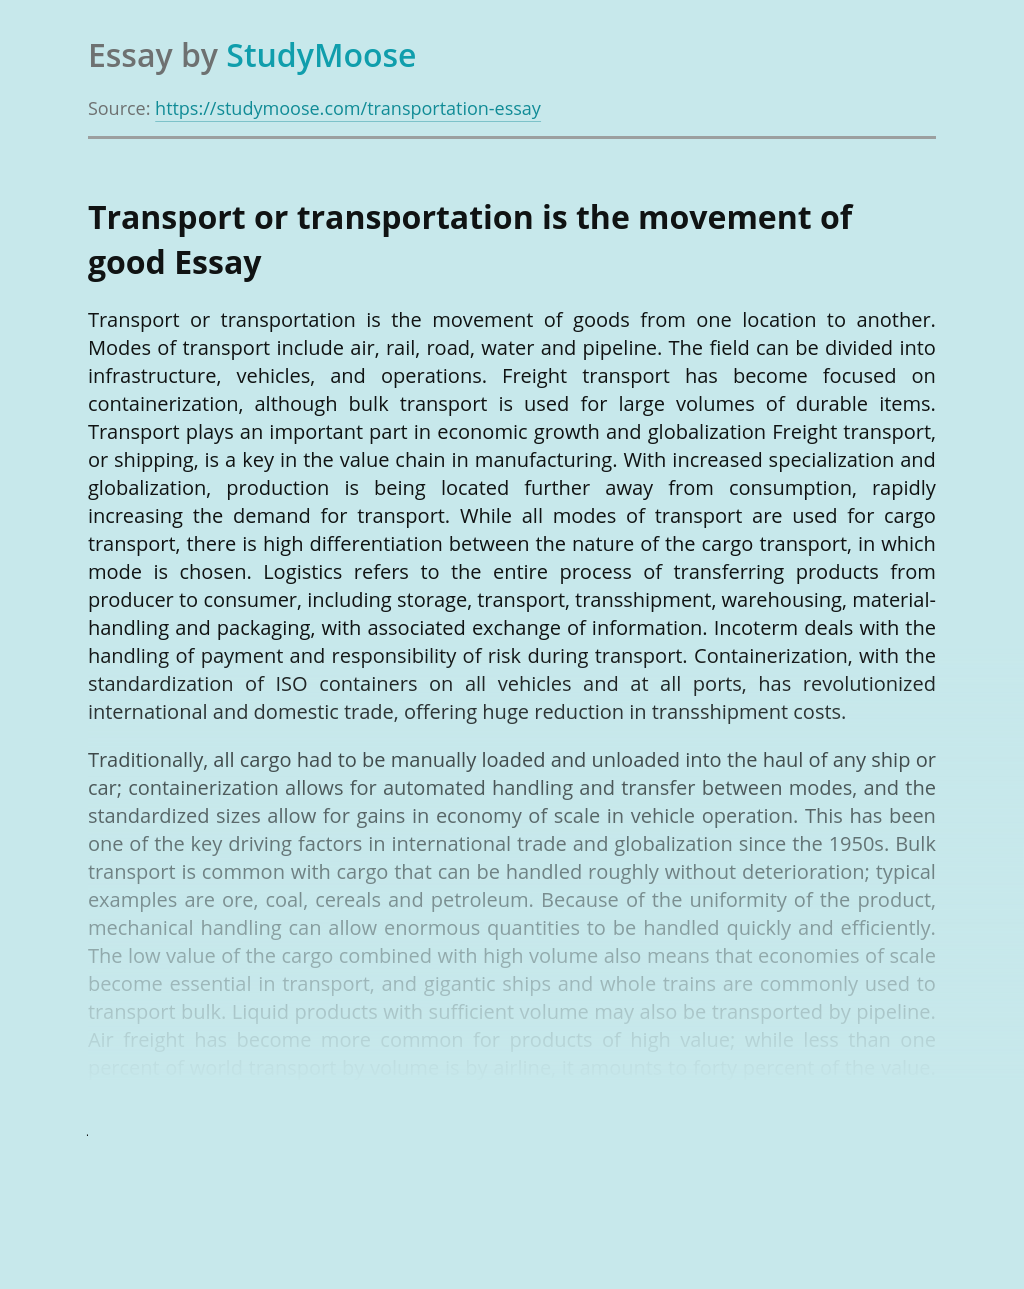 Transport or transportation is the movement of good